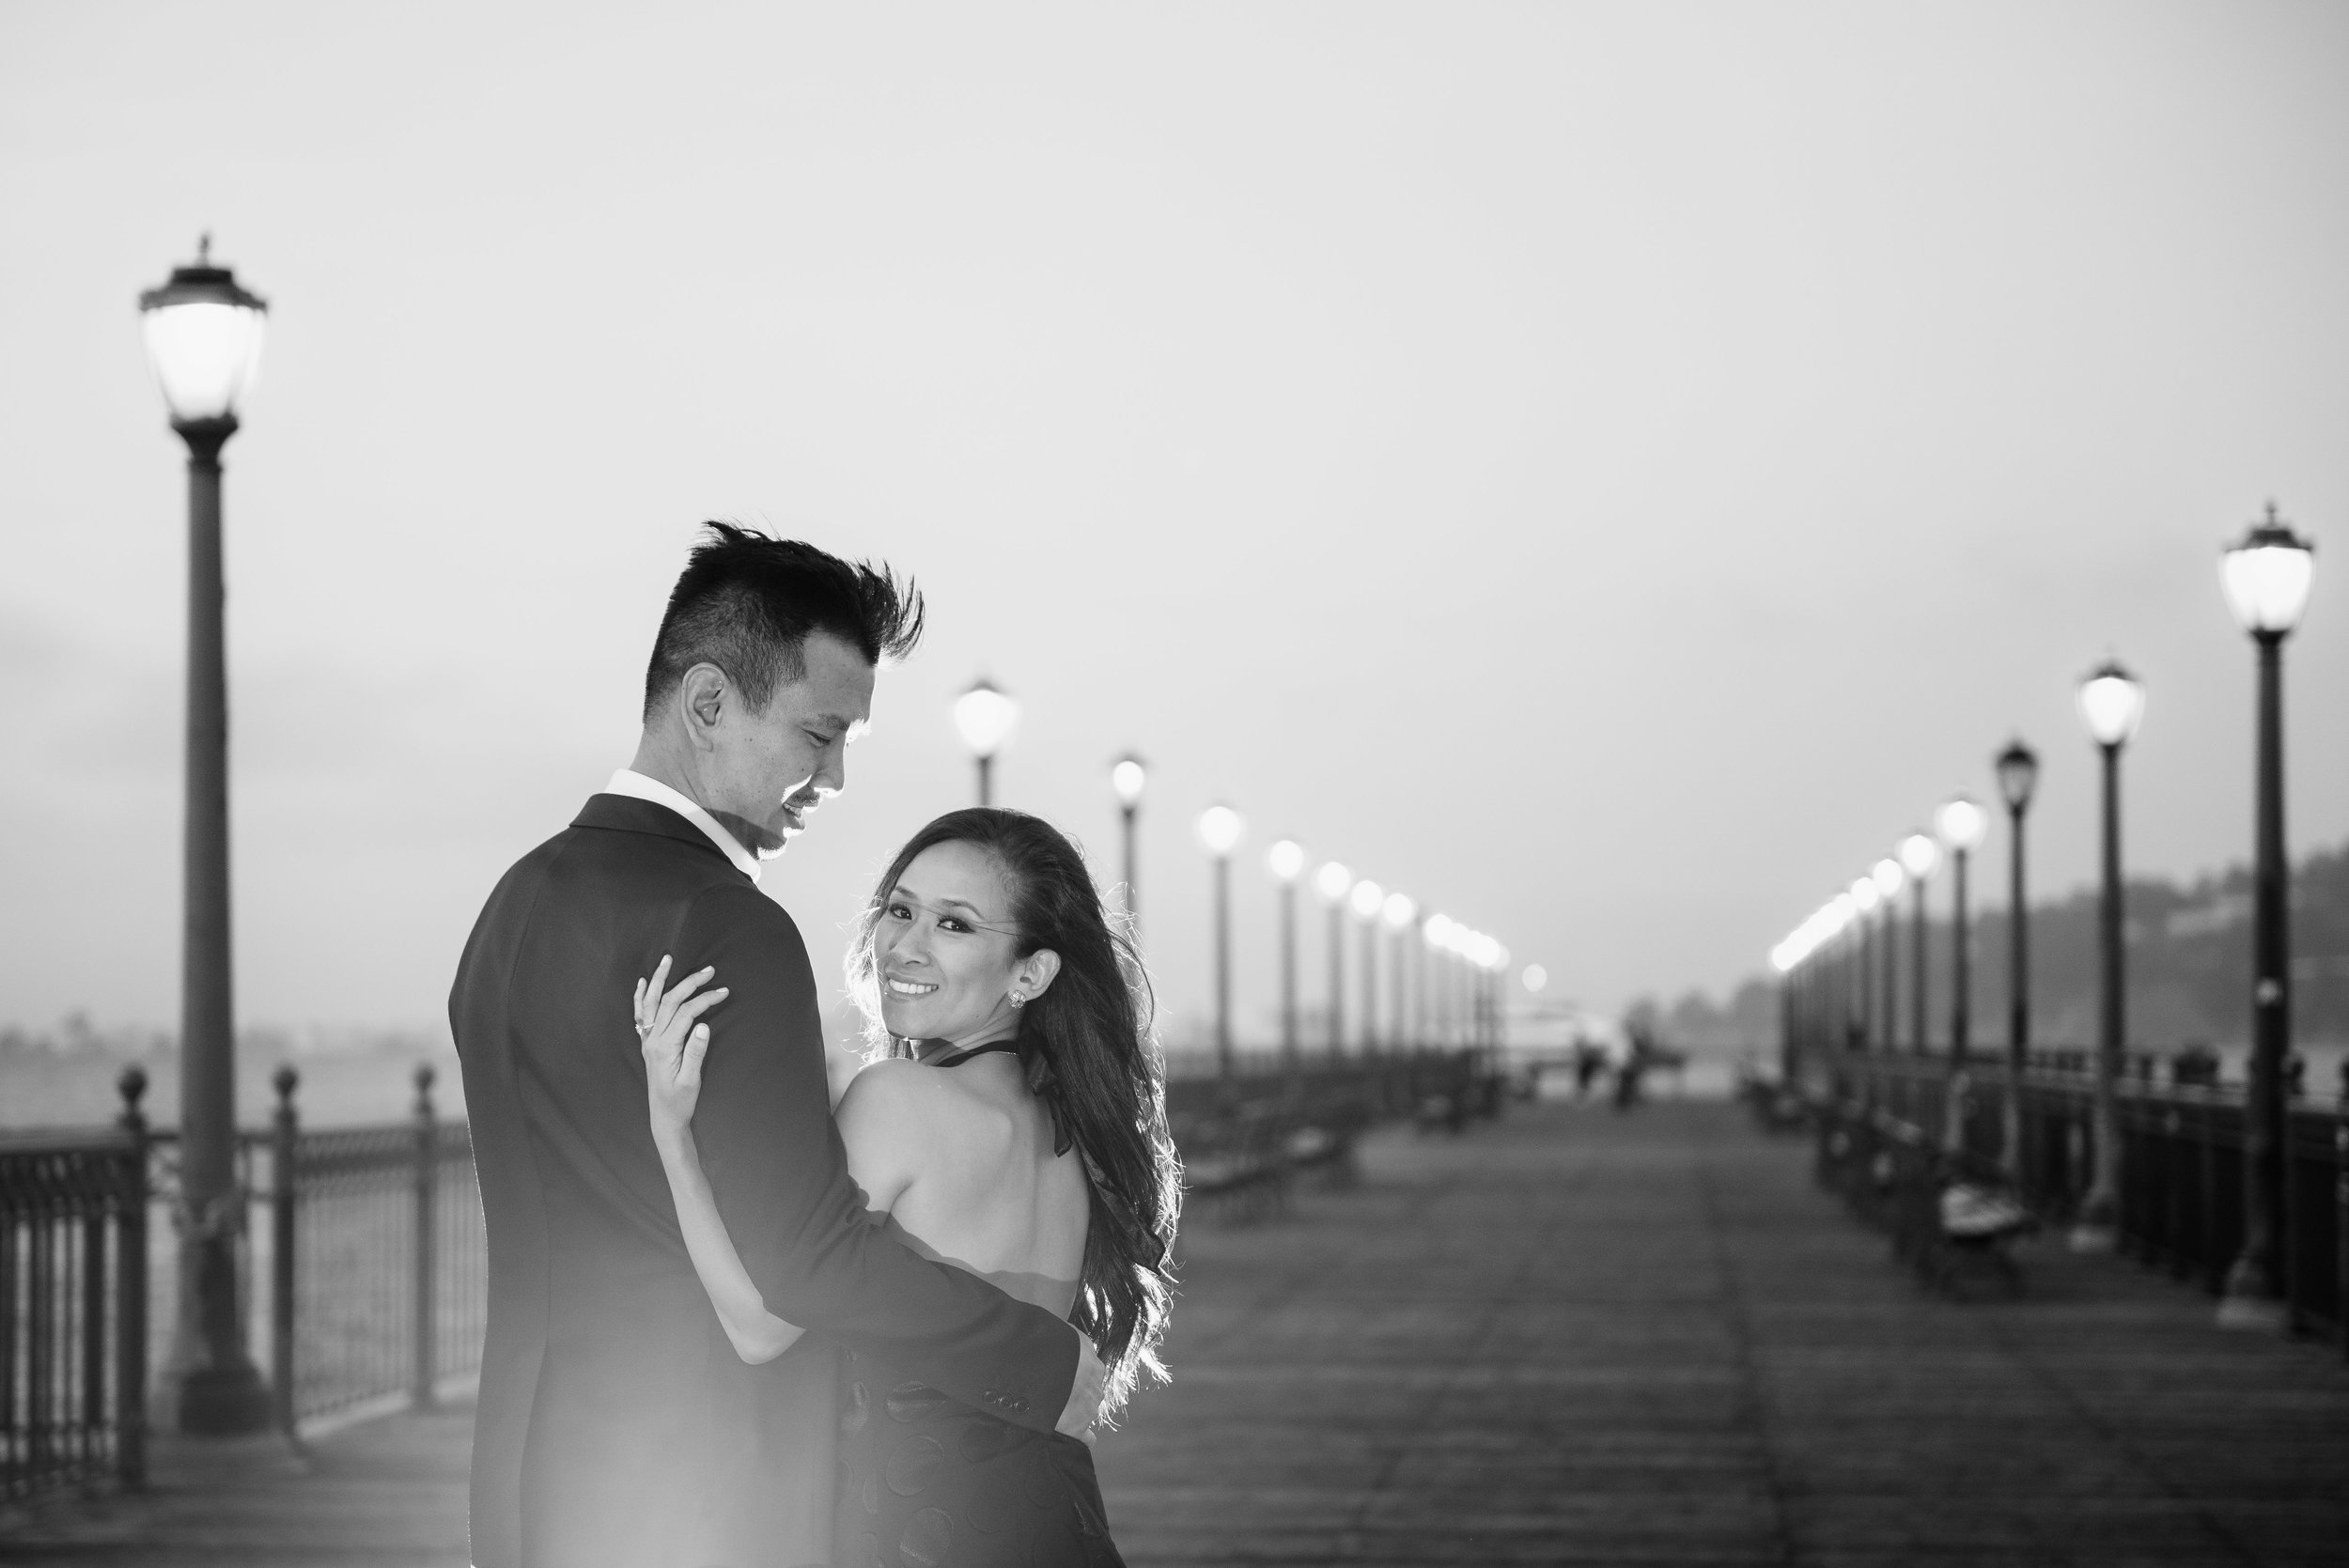 jennifer-jayn-photography-san-francisco-engagement-session-14.jpg